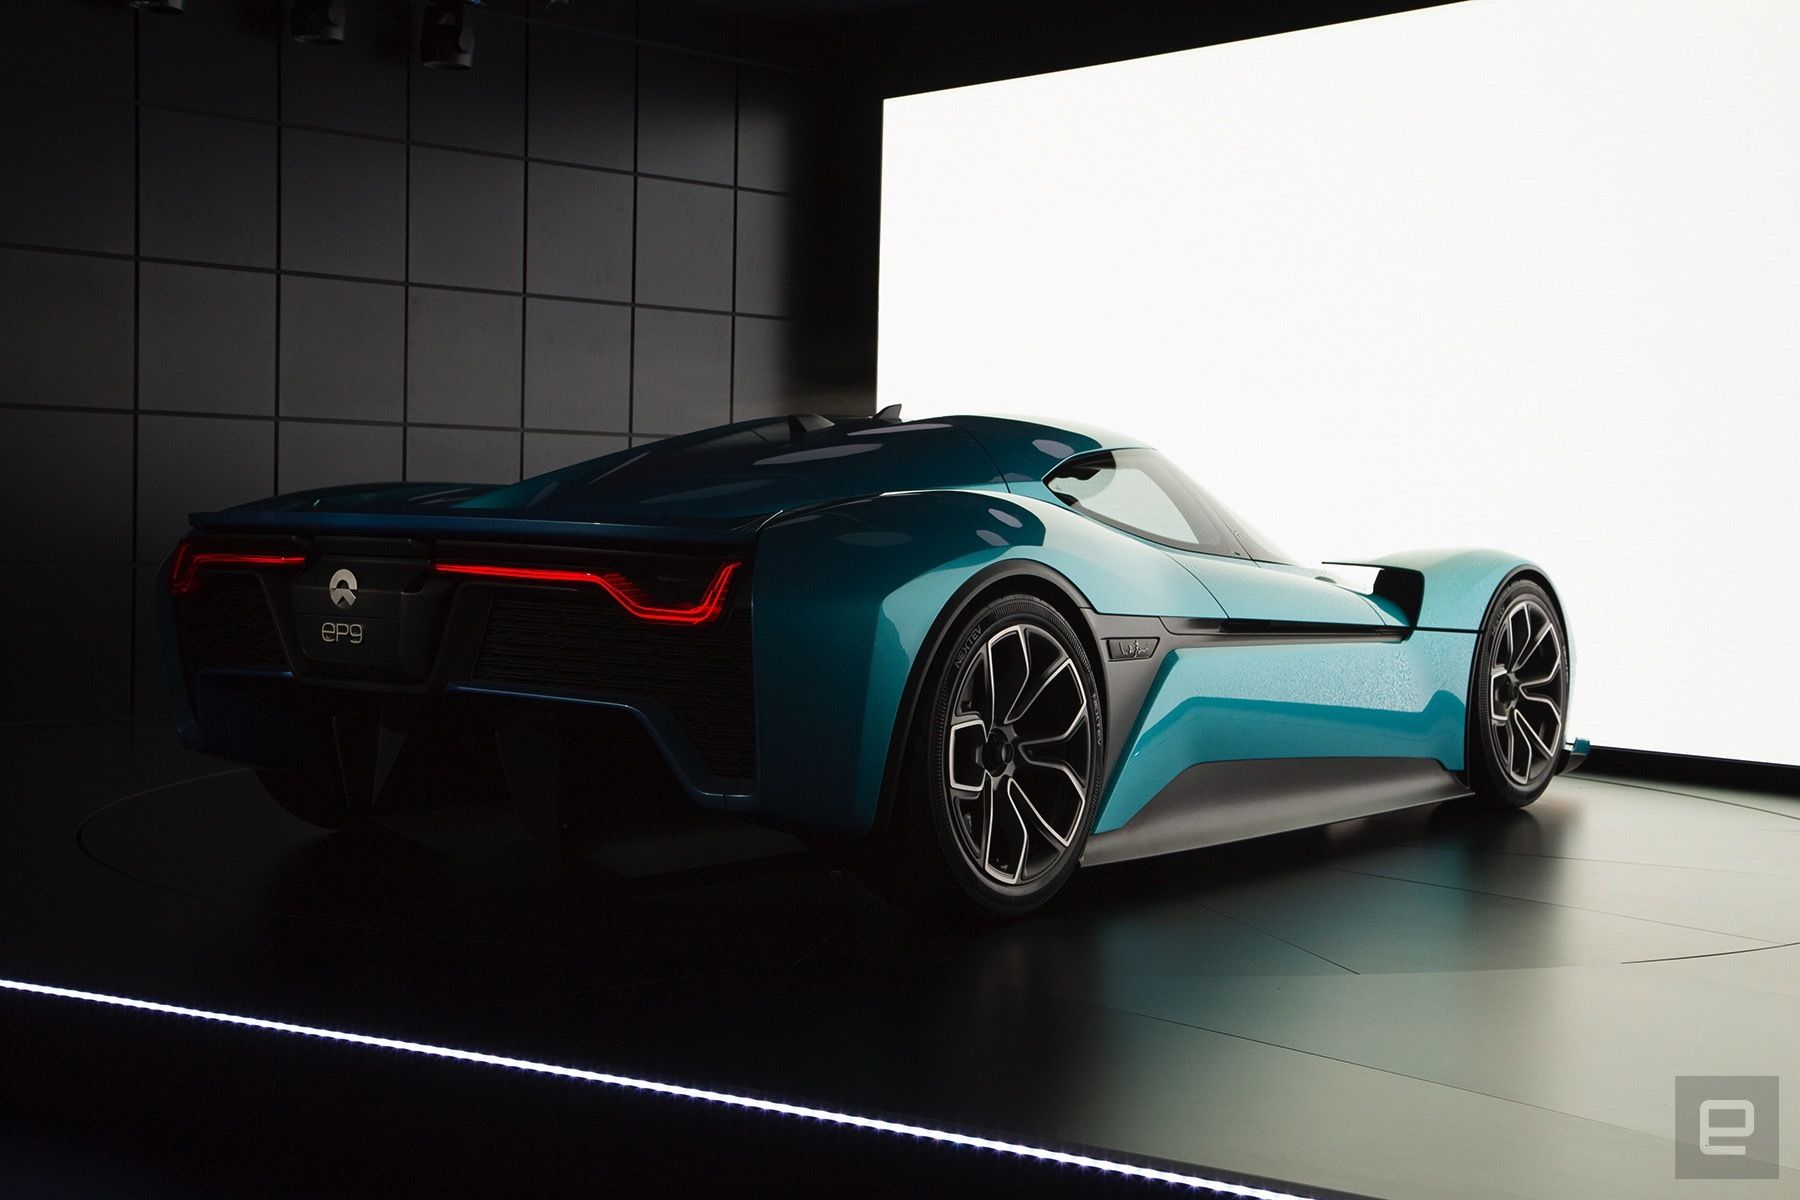 The Nio Ep9 Is The World S Fastest All Electric Supercar Super Cars Supercars Concept Electric Car Concept